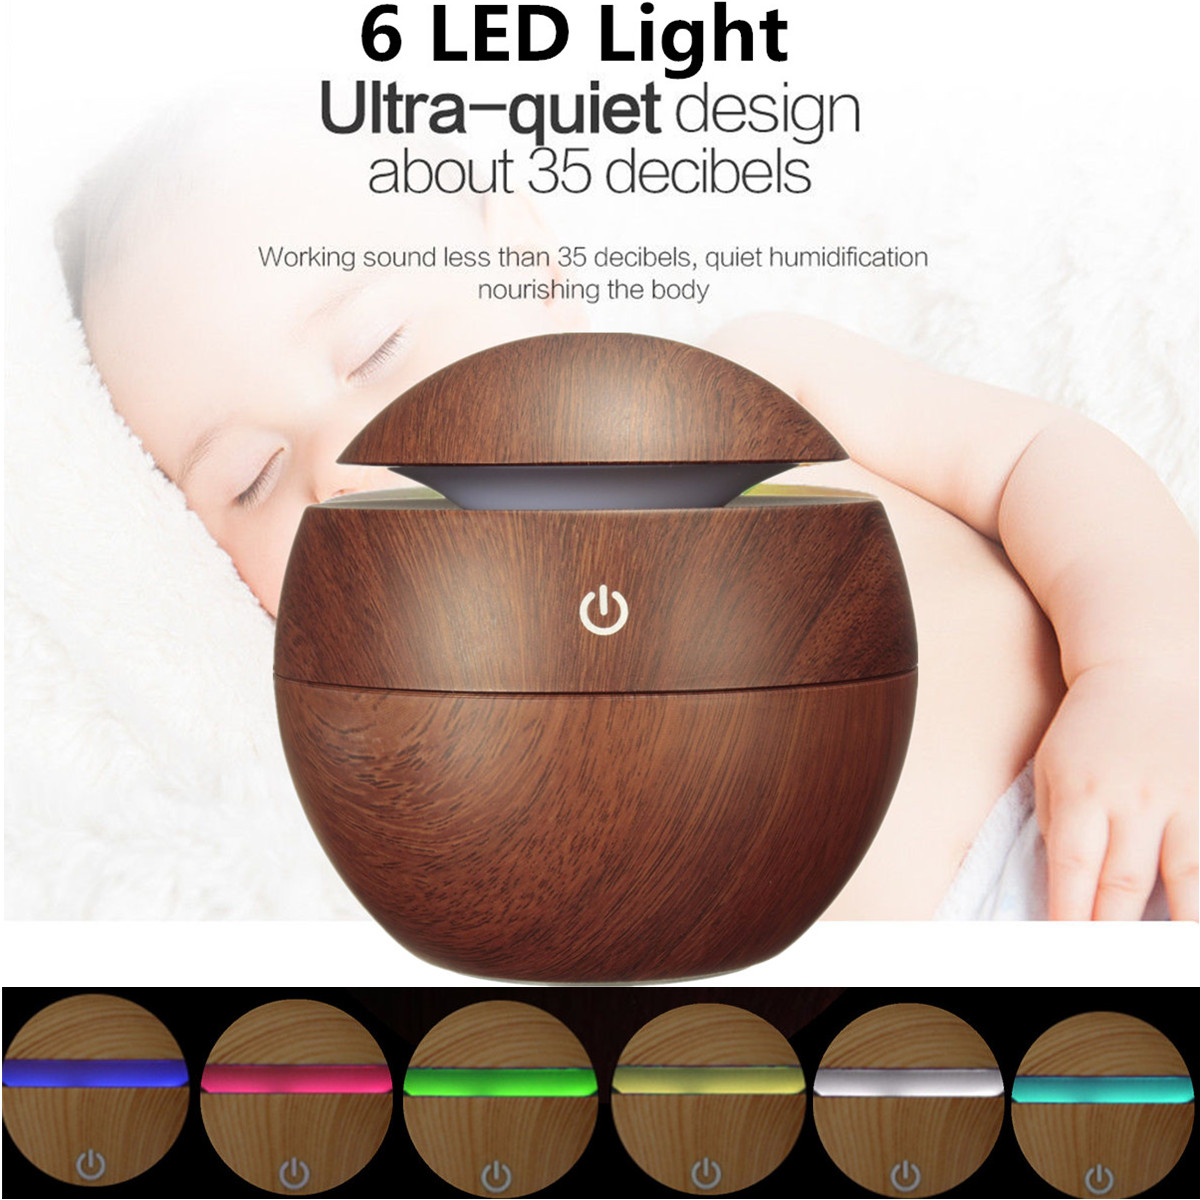 Mohoo Aroma Essential Oil Diffuser for Baby Room, Wood USB LED Grain Ultrasonic Cool Mist Humidifier for Car Office Home Study Gym Yoga Spa